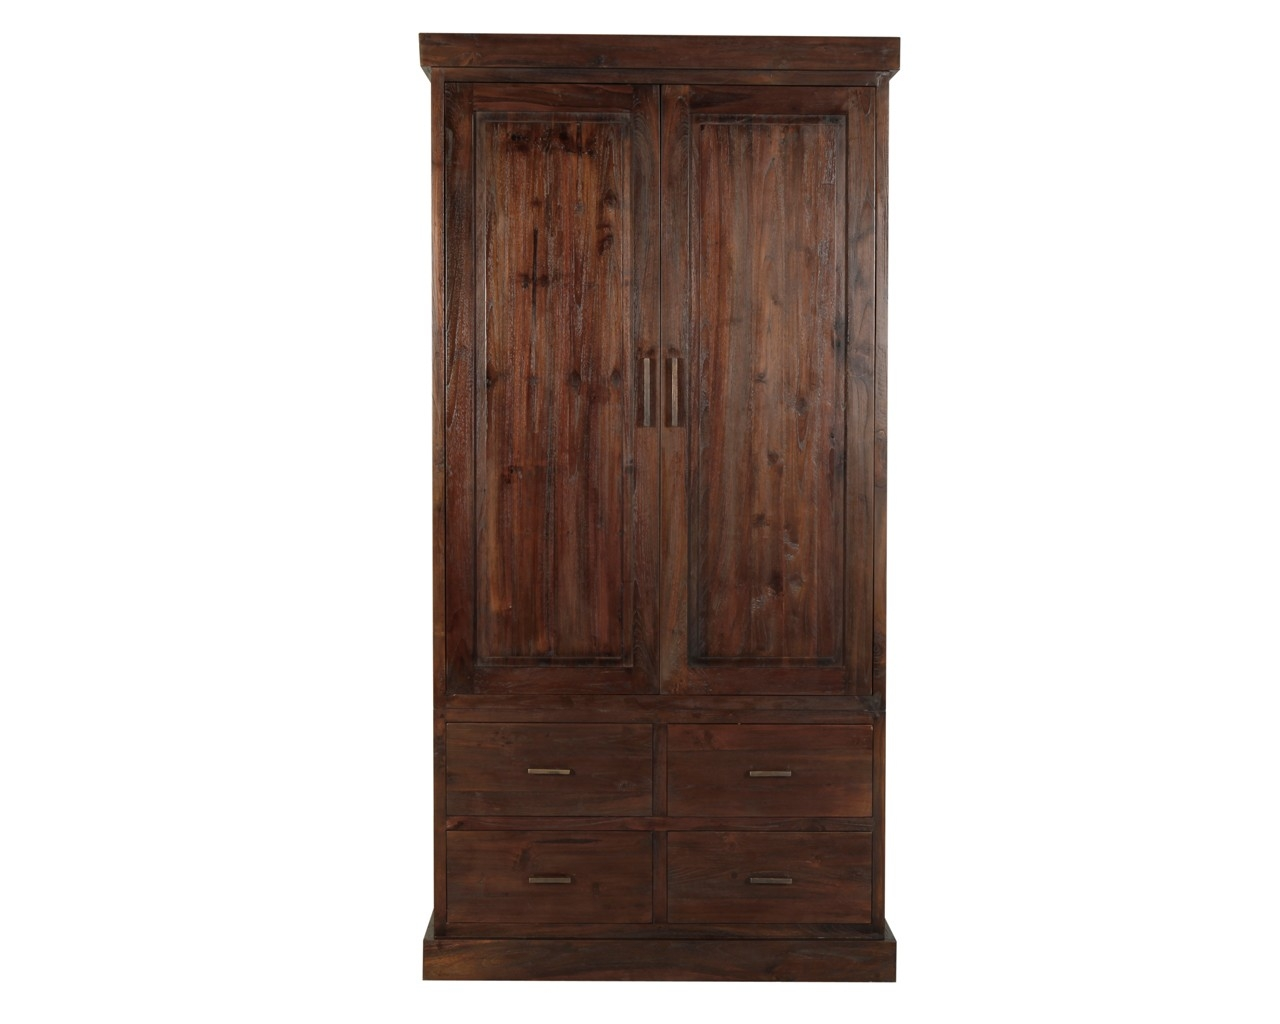 Puji Reclaimed Teak Wardrobes Dark Wood Gents Wardrobe Within Dark Wardrobes (Image 13 of 15)